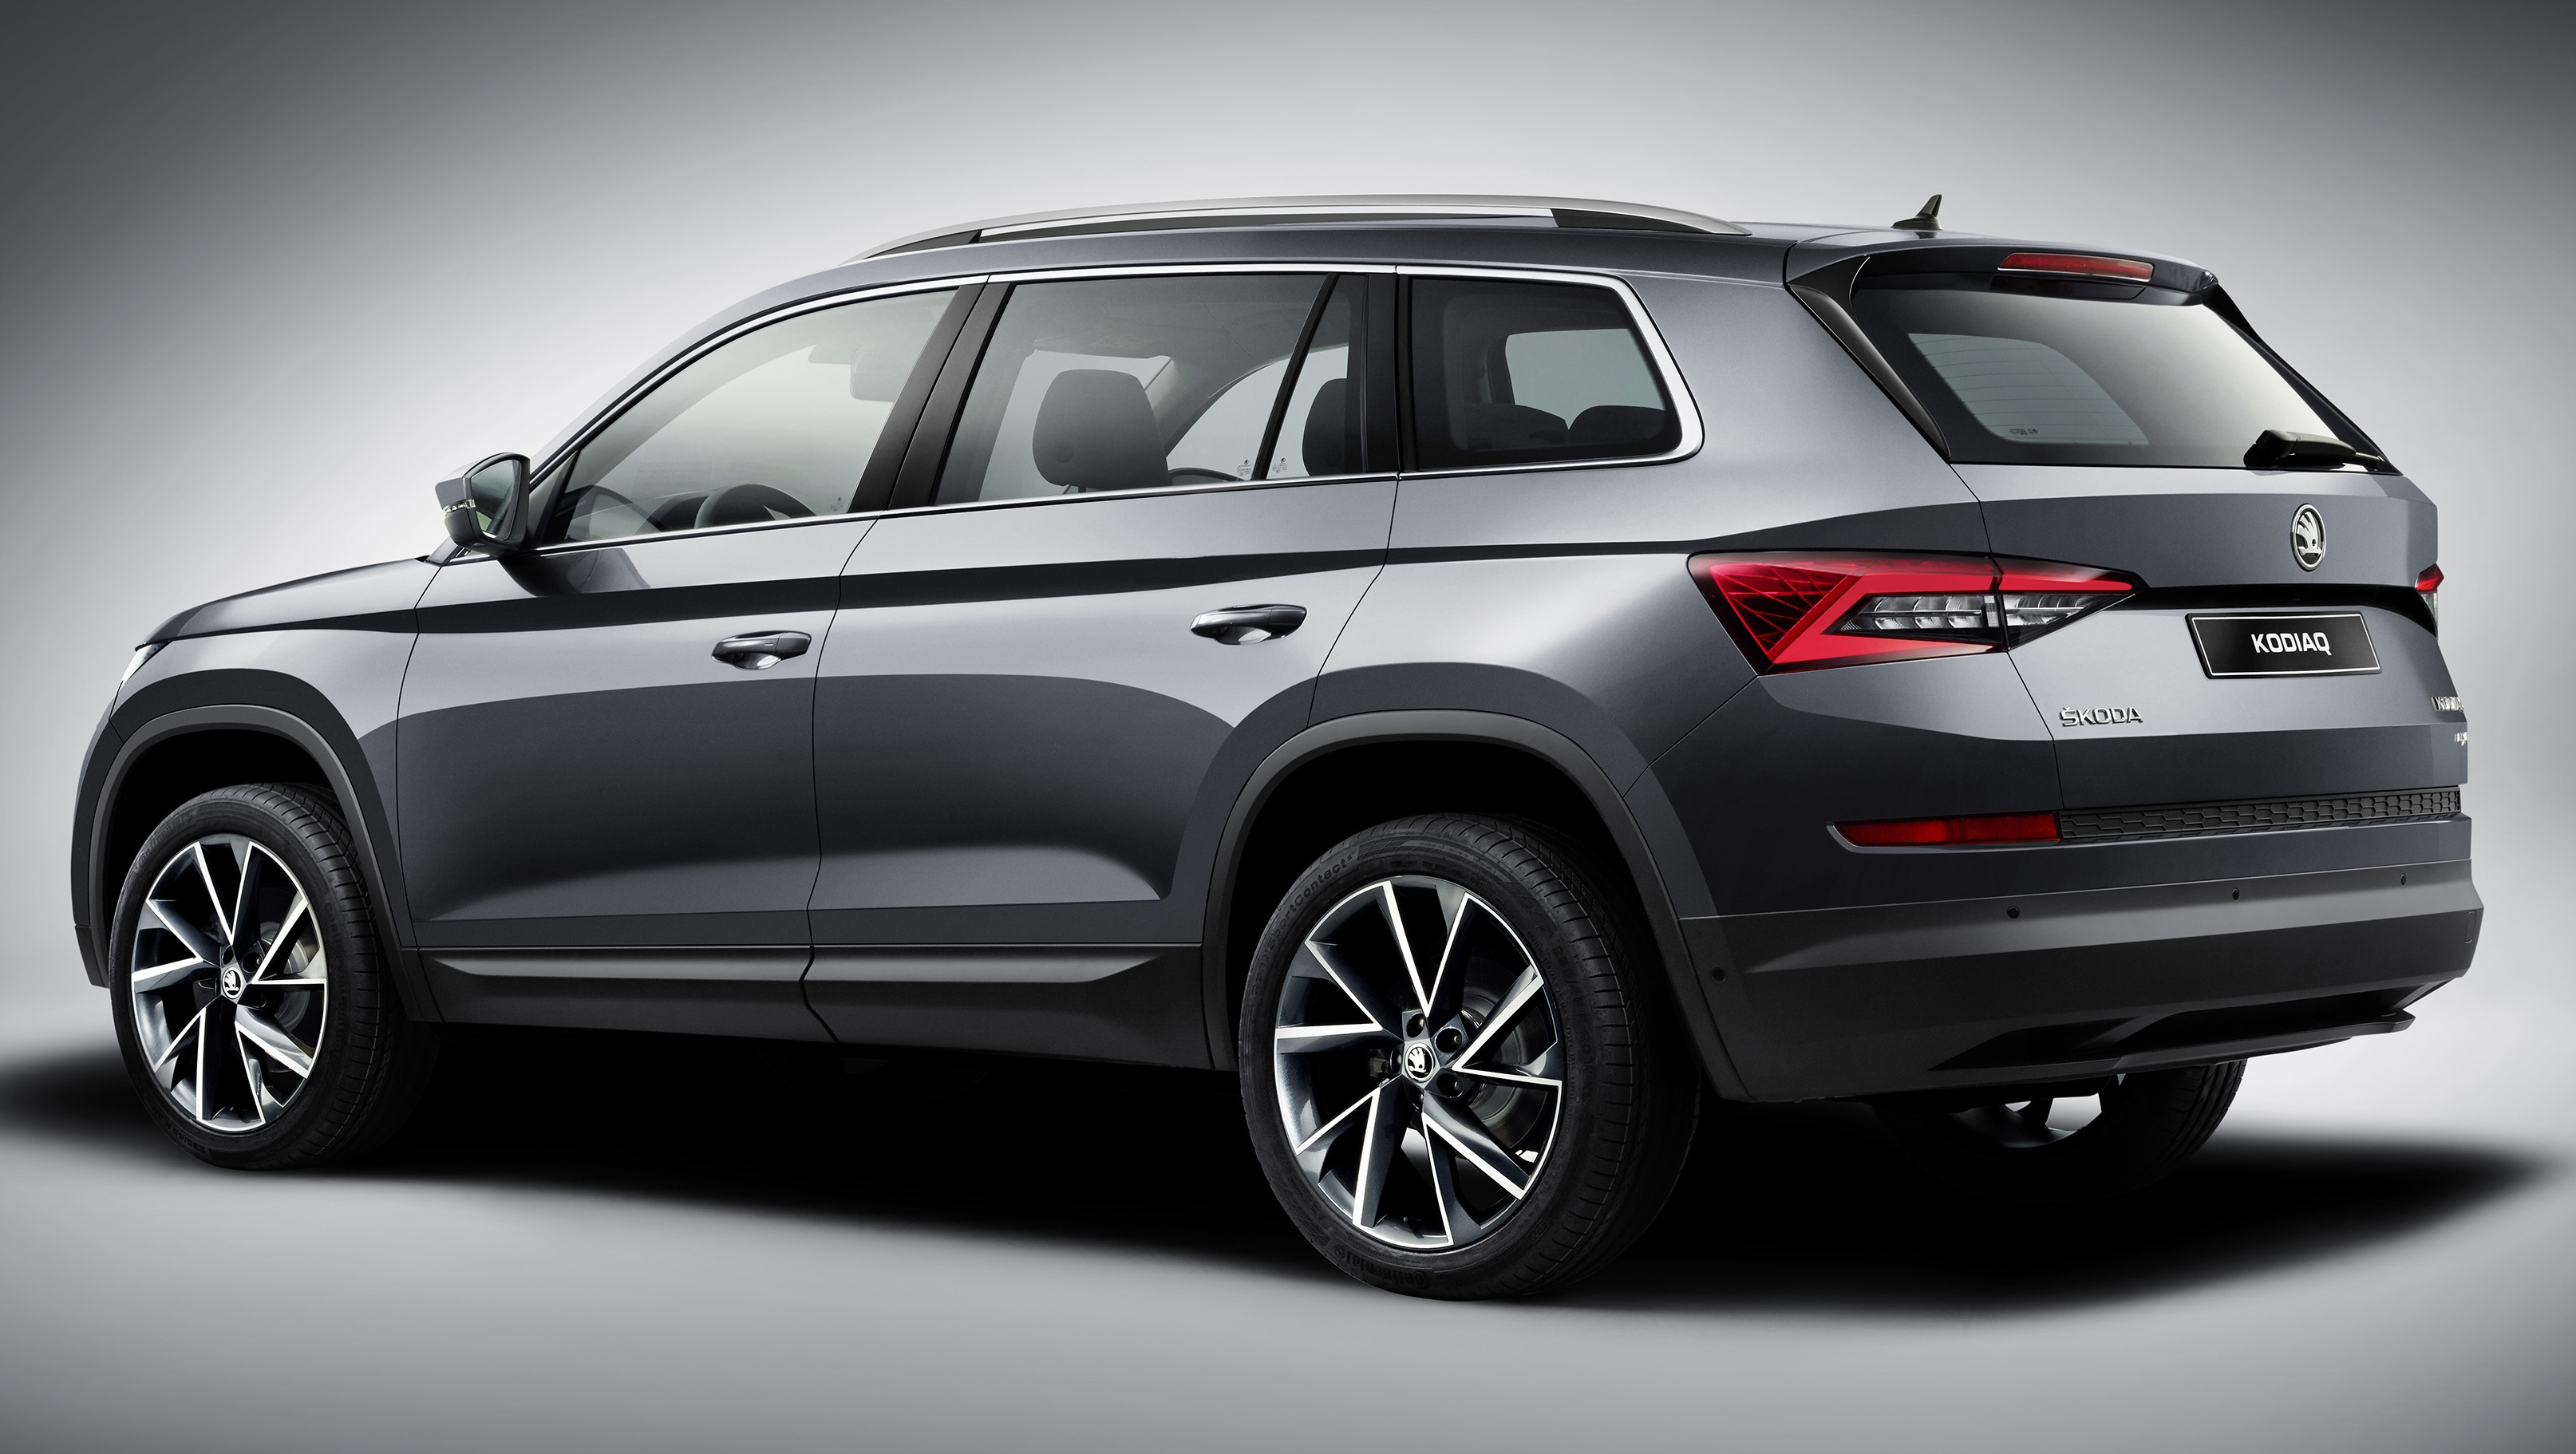 skoda kodiaq suv finally unveiled up to 7 seats image 543286. Black Bedroom Furniture Sets. Home Design Ideas